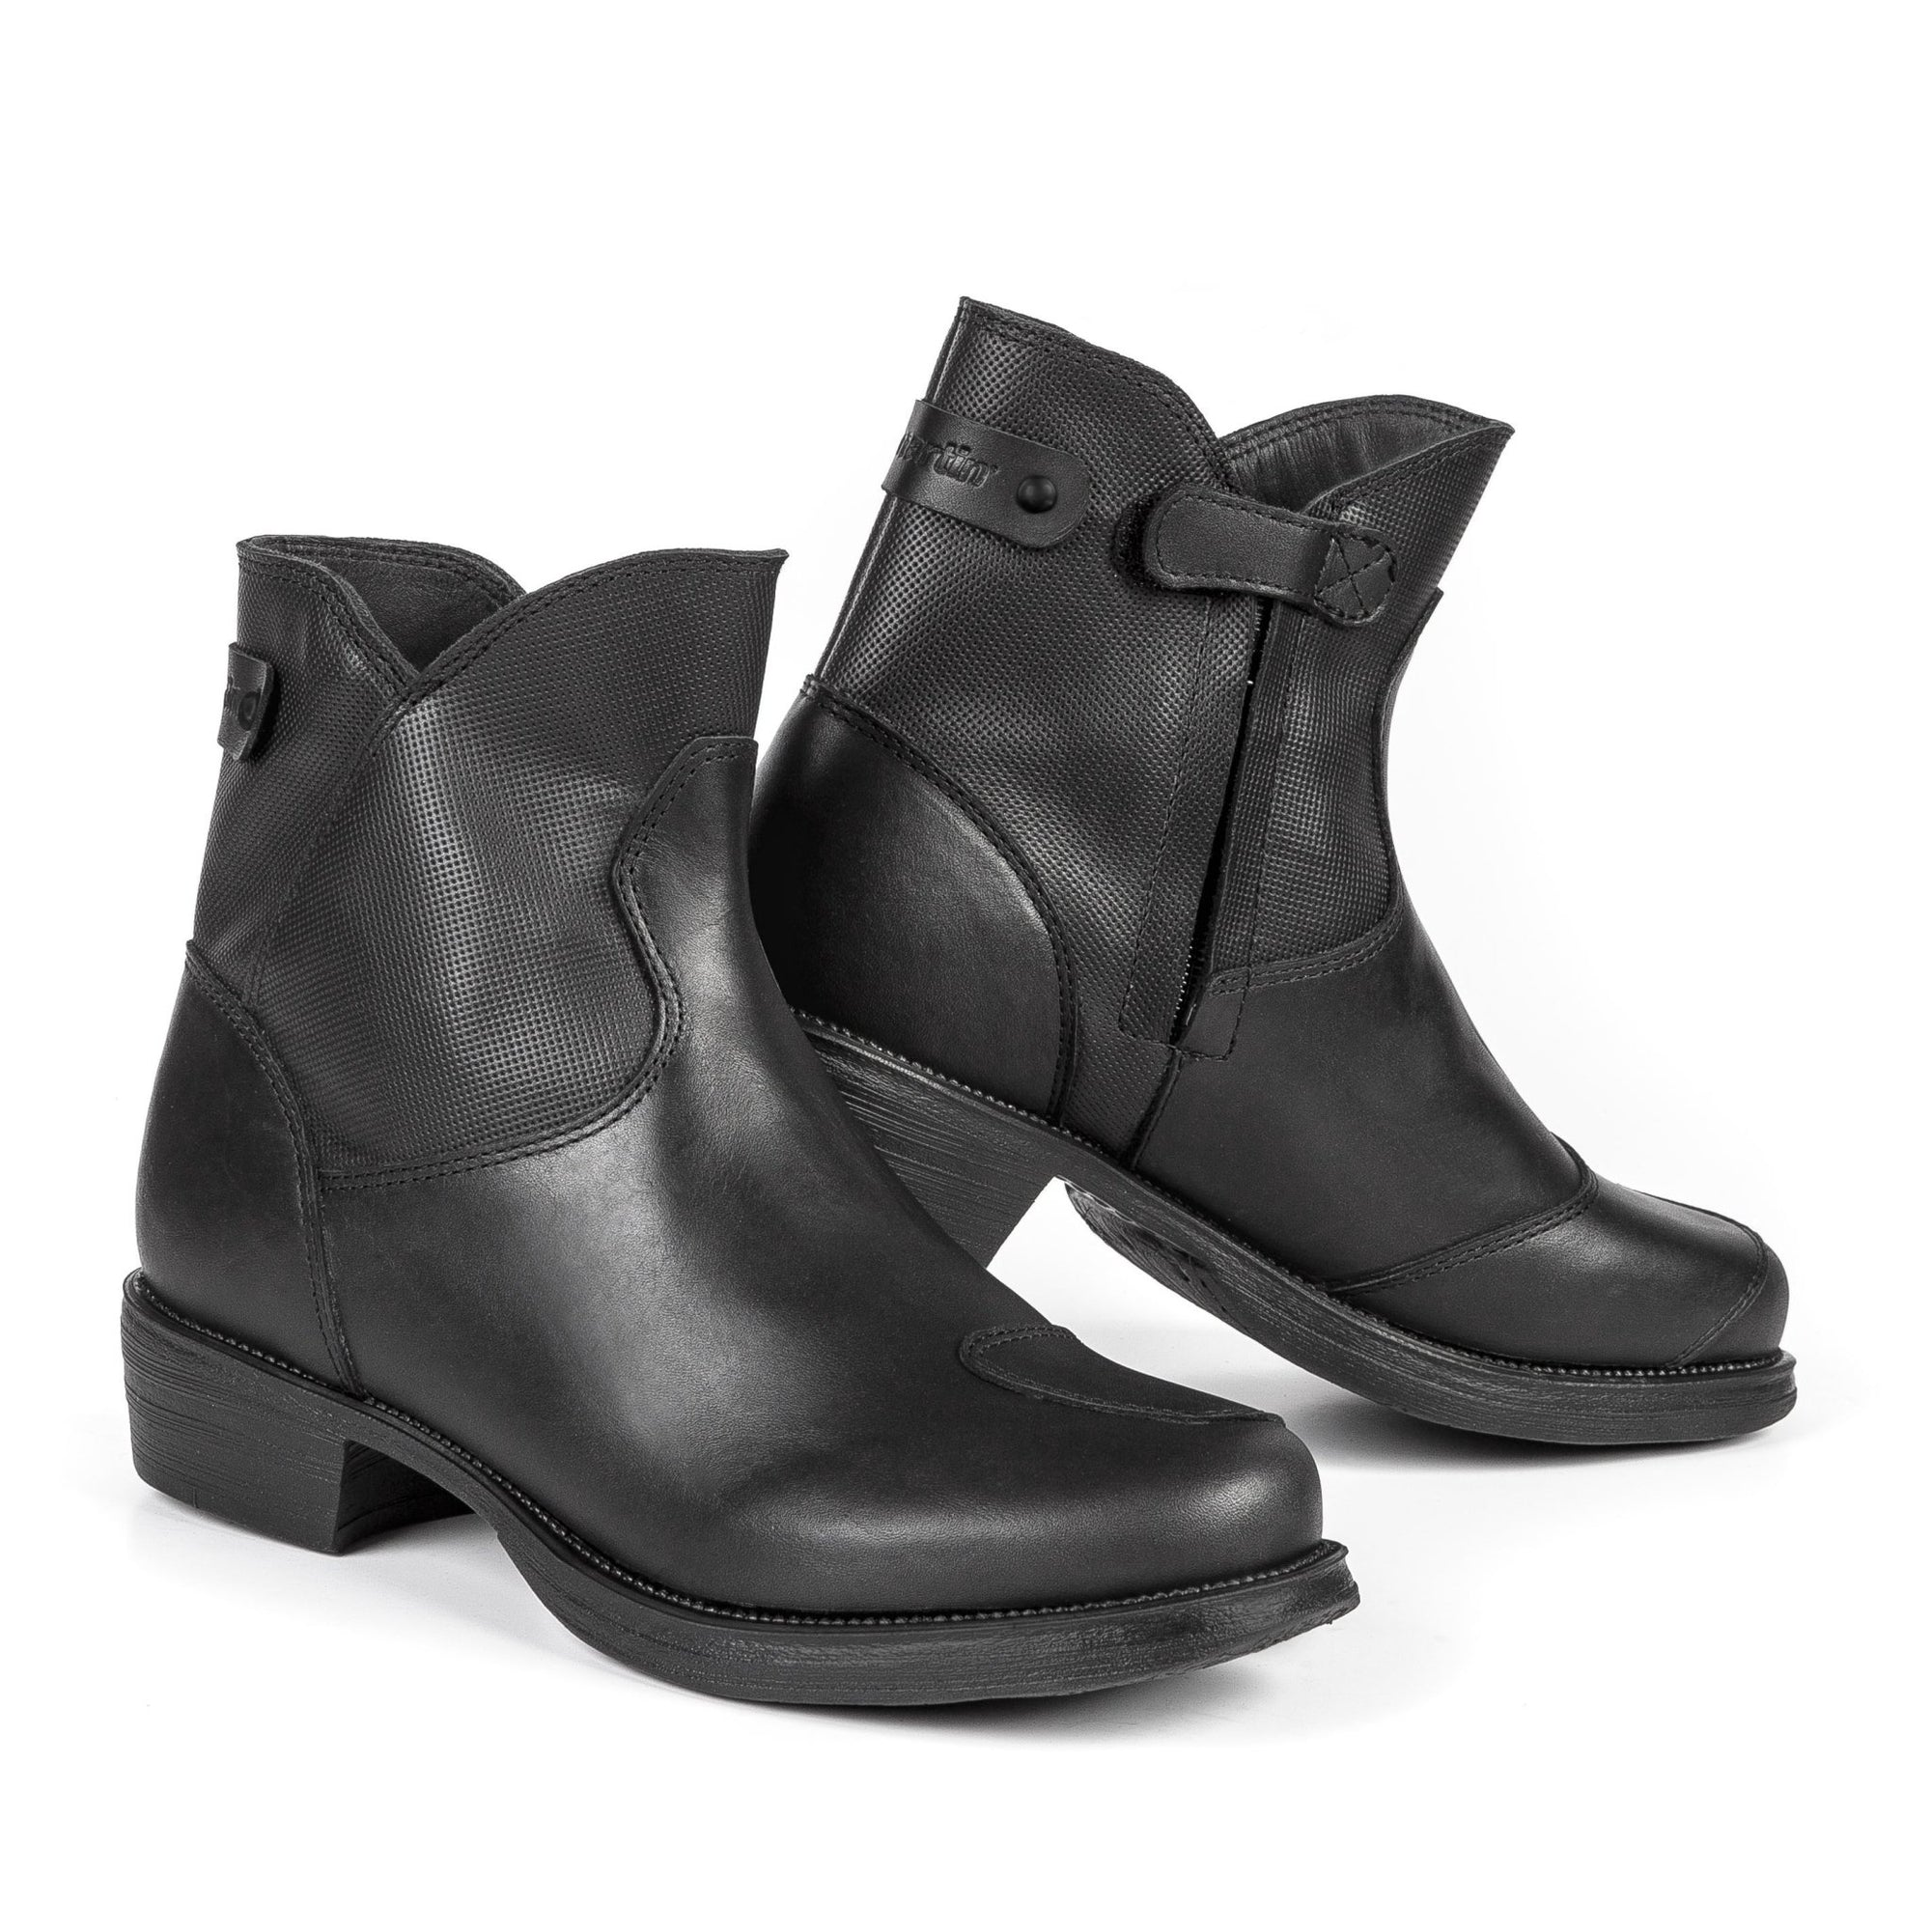 Stylmartin - Stylmartin Pearl J WP Urban in Black - Boots - Salt Flats Clothing